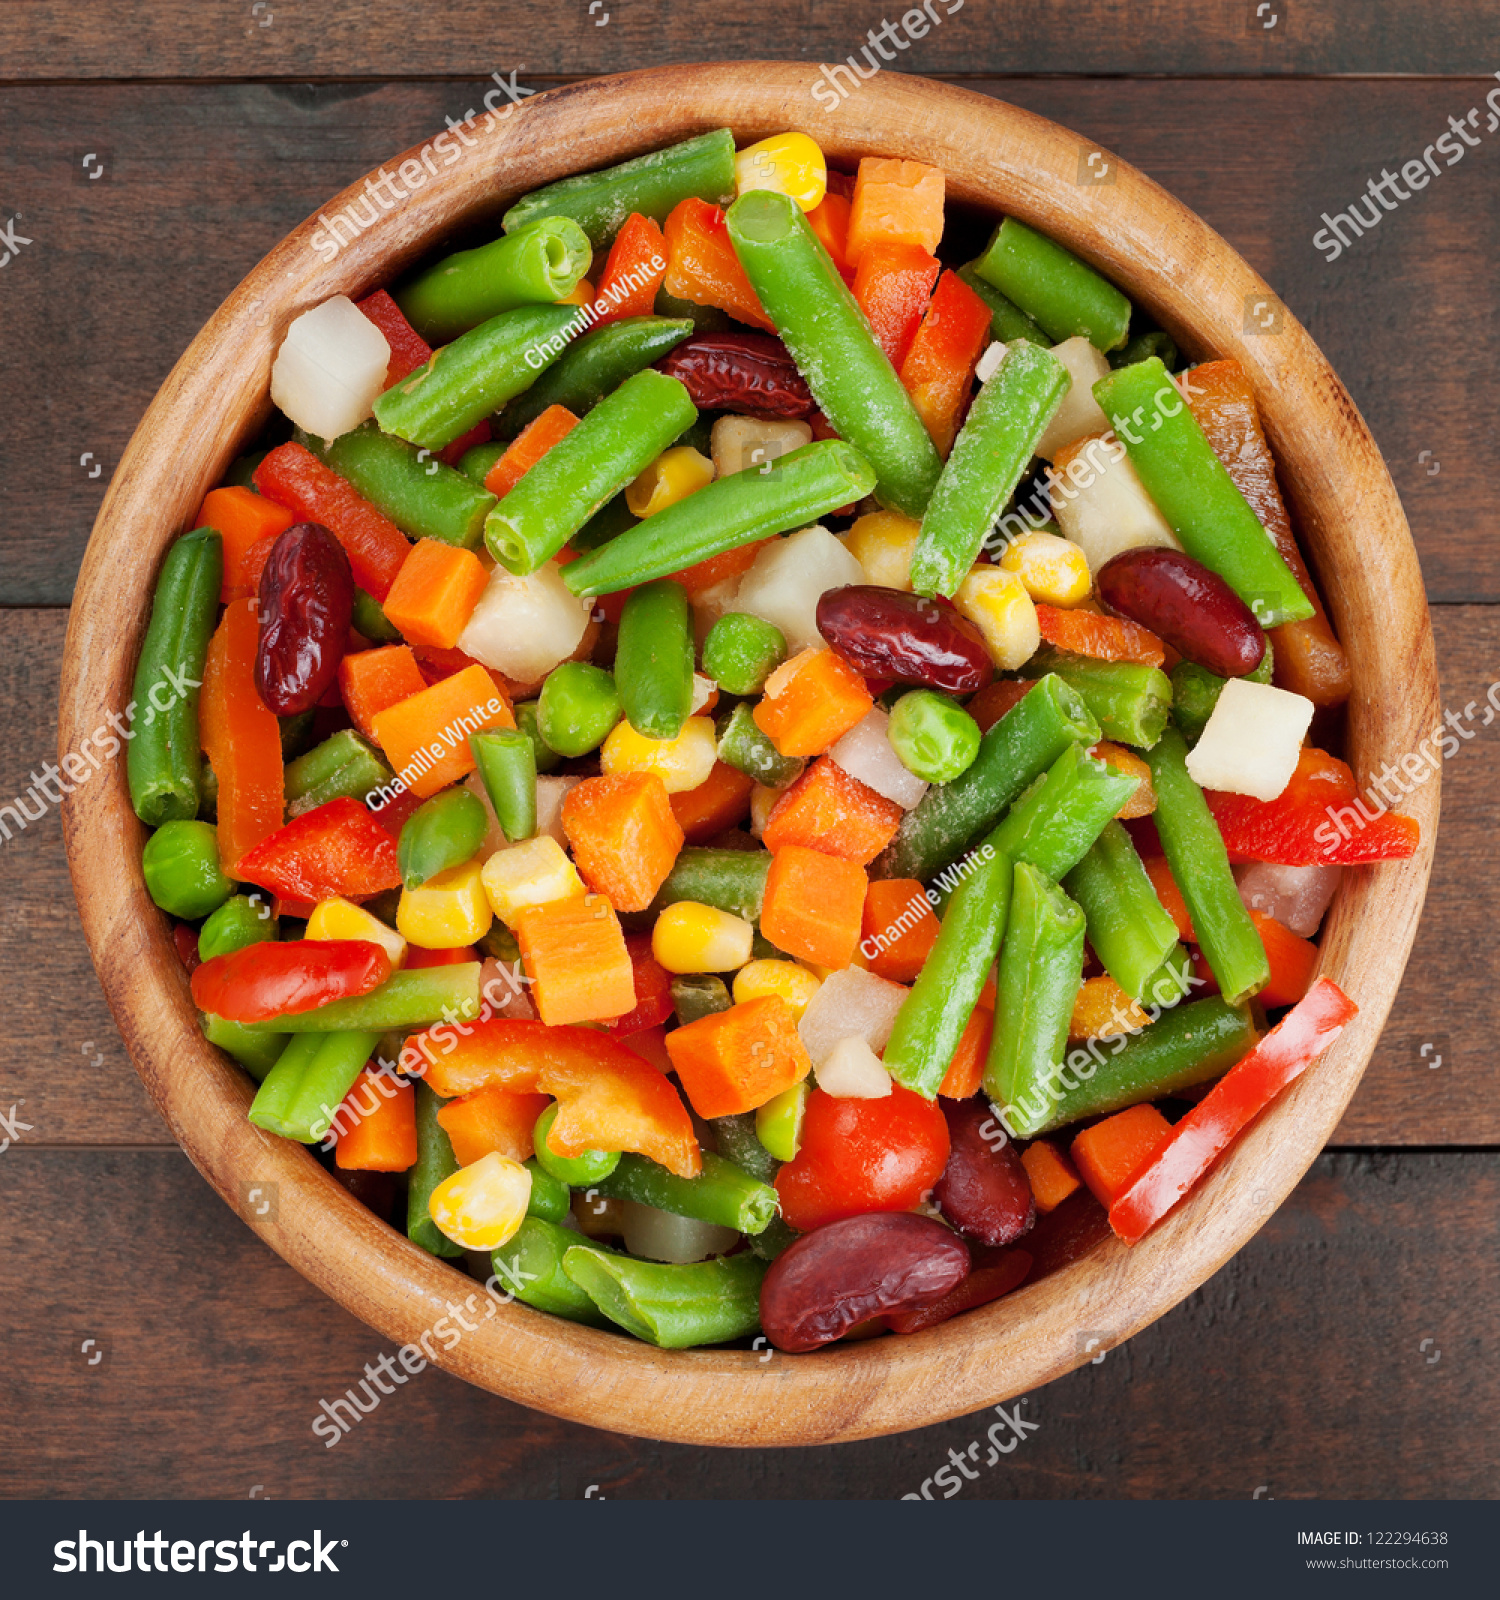 Kitchen table top view - Mixed Vegetables In Wooden Bowl On Kitchen Table Top View